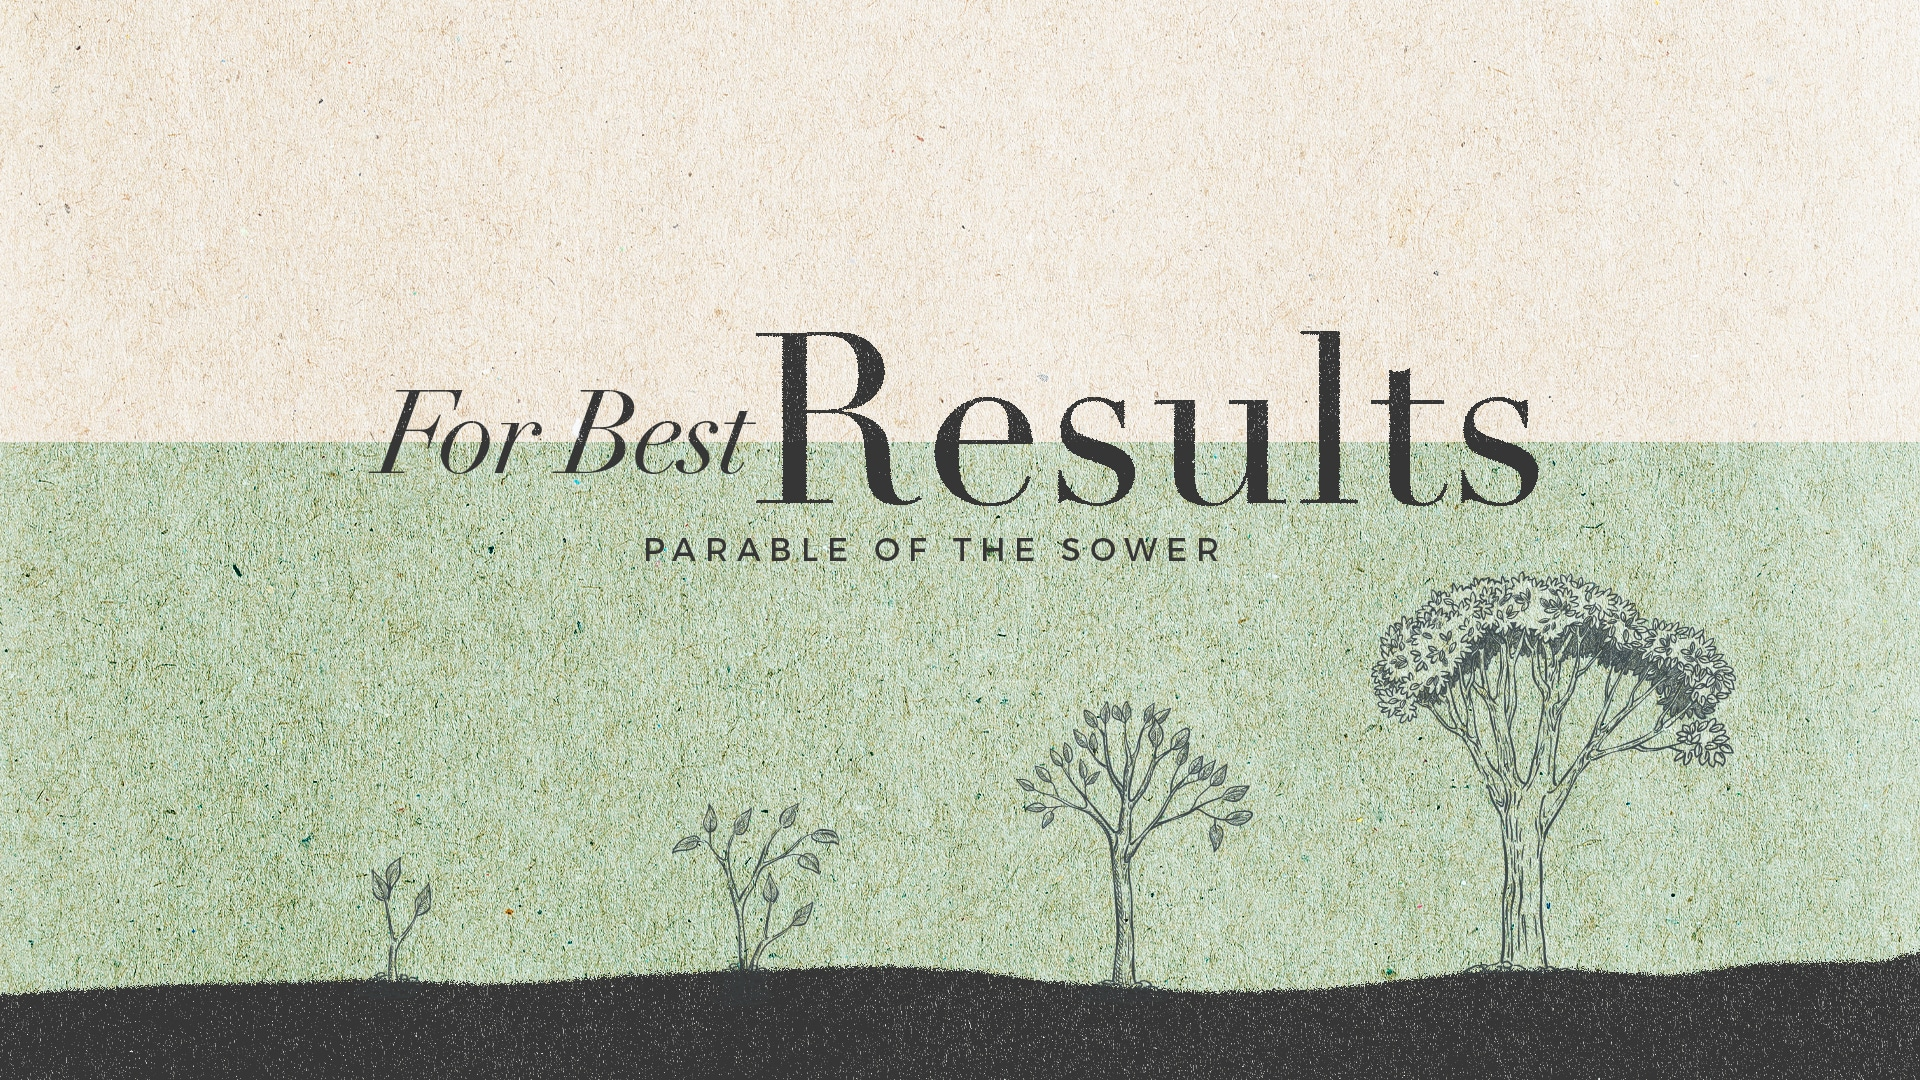 Brooklyn Tabernacle For best results (parable of the sower) thumbnail